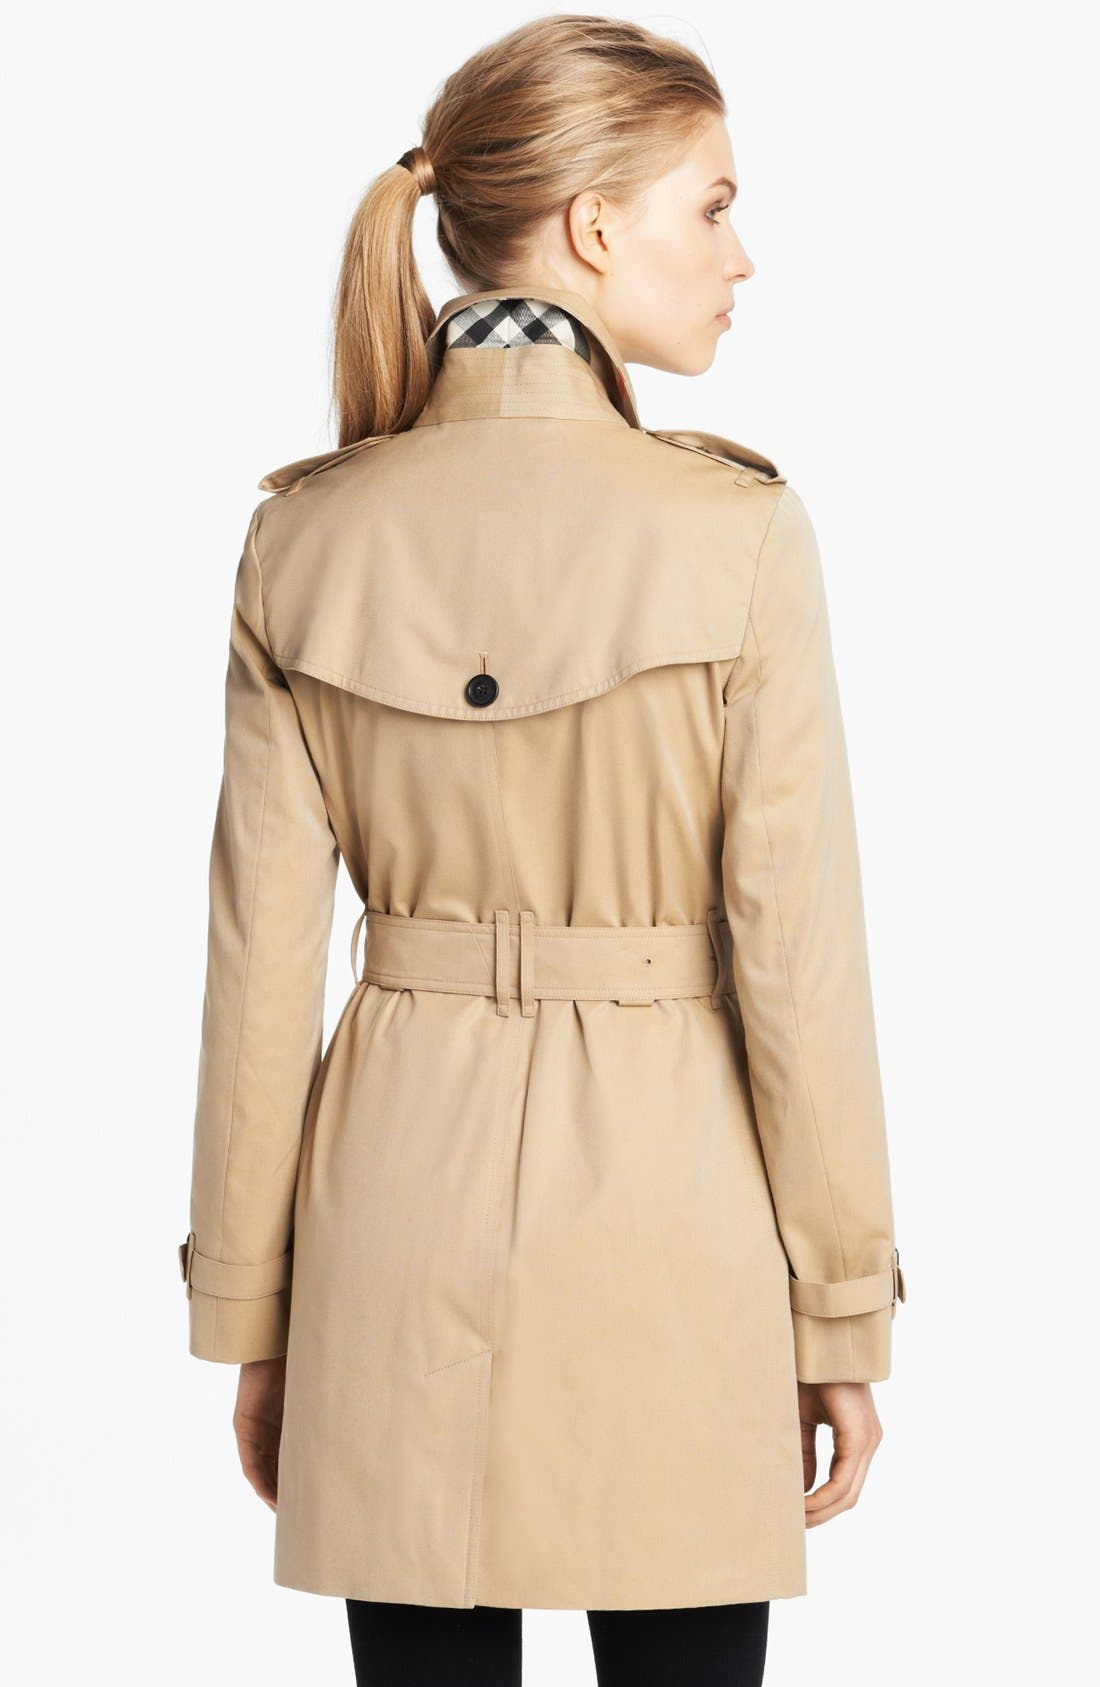 'Buckingham' Double Breasted Cotton Trench,                             Alternate thumbnail 3, color,                             251